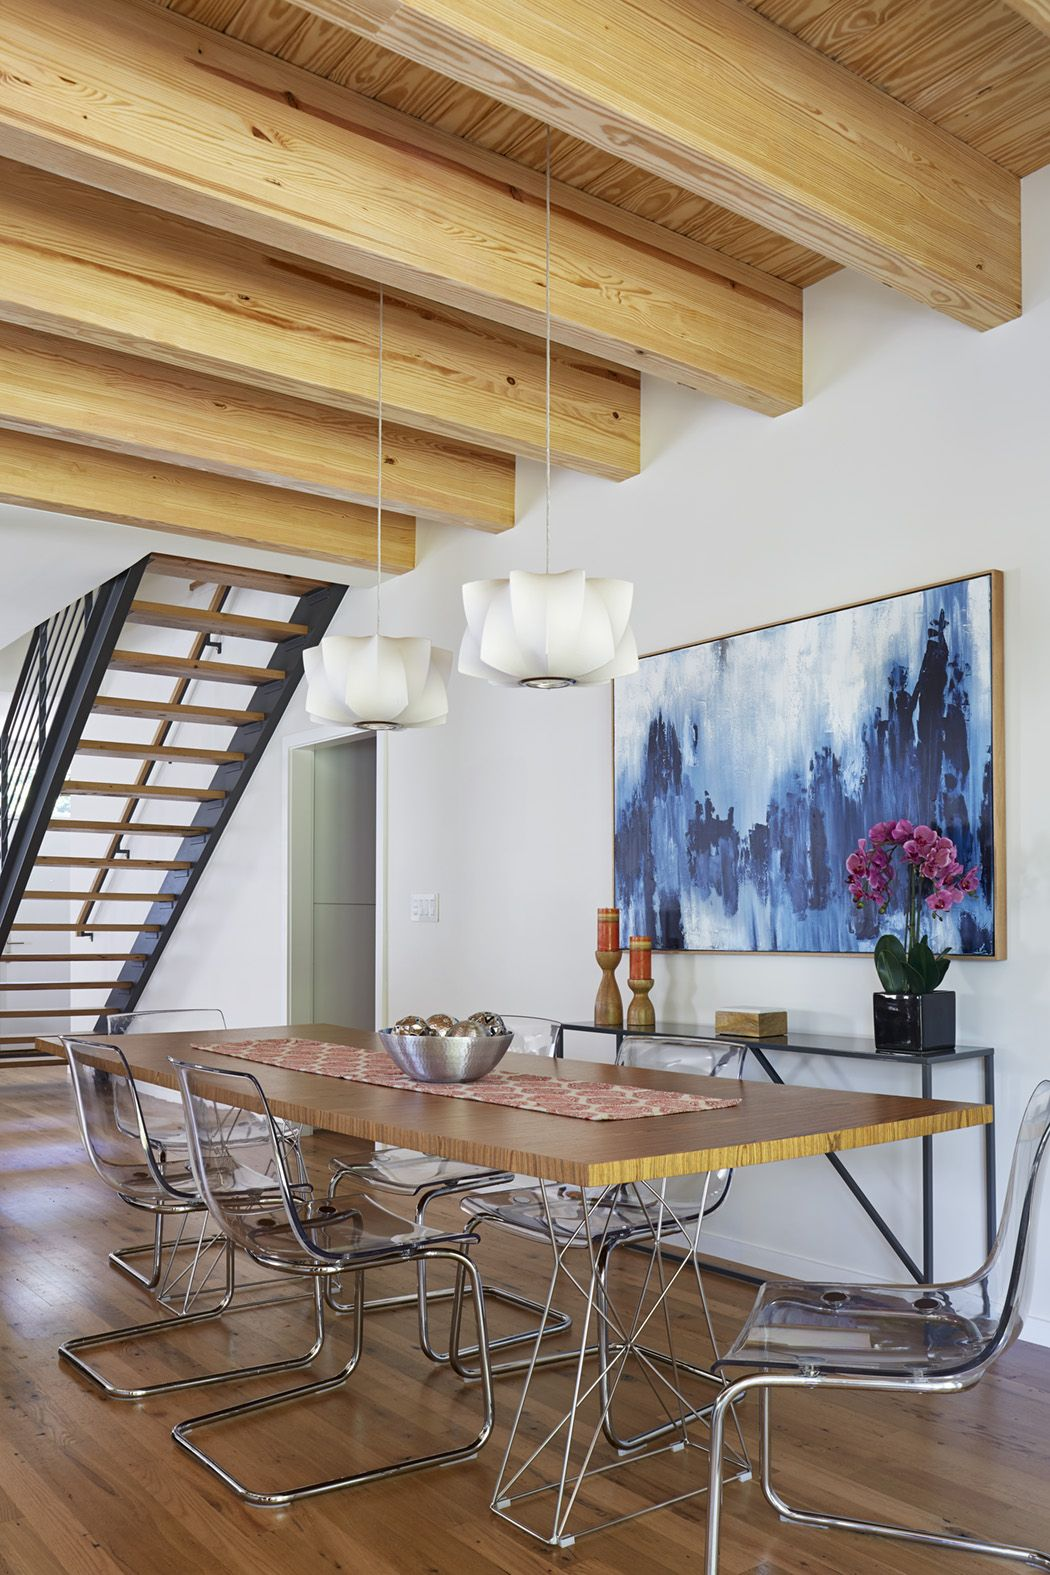 Exposed Glulam Beams Over The Kitchen And Dining Areas Are A Focal Point Signaling This As The Heart Of Sustainable Home House In Nature Build Your Dream Home